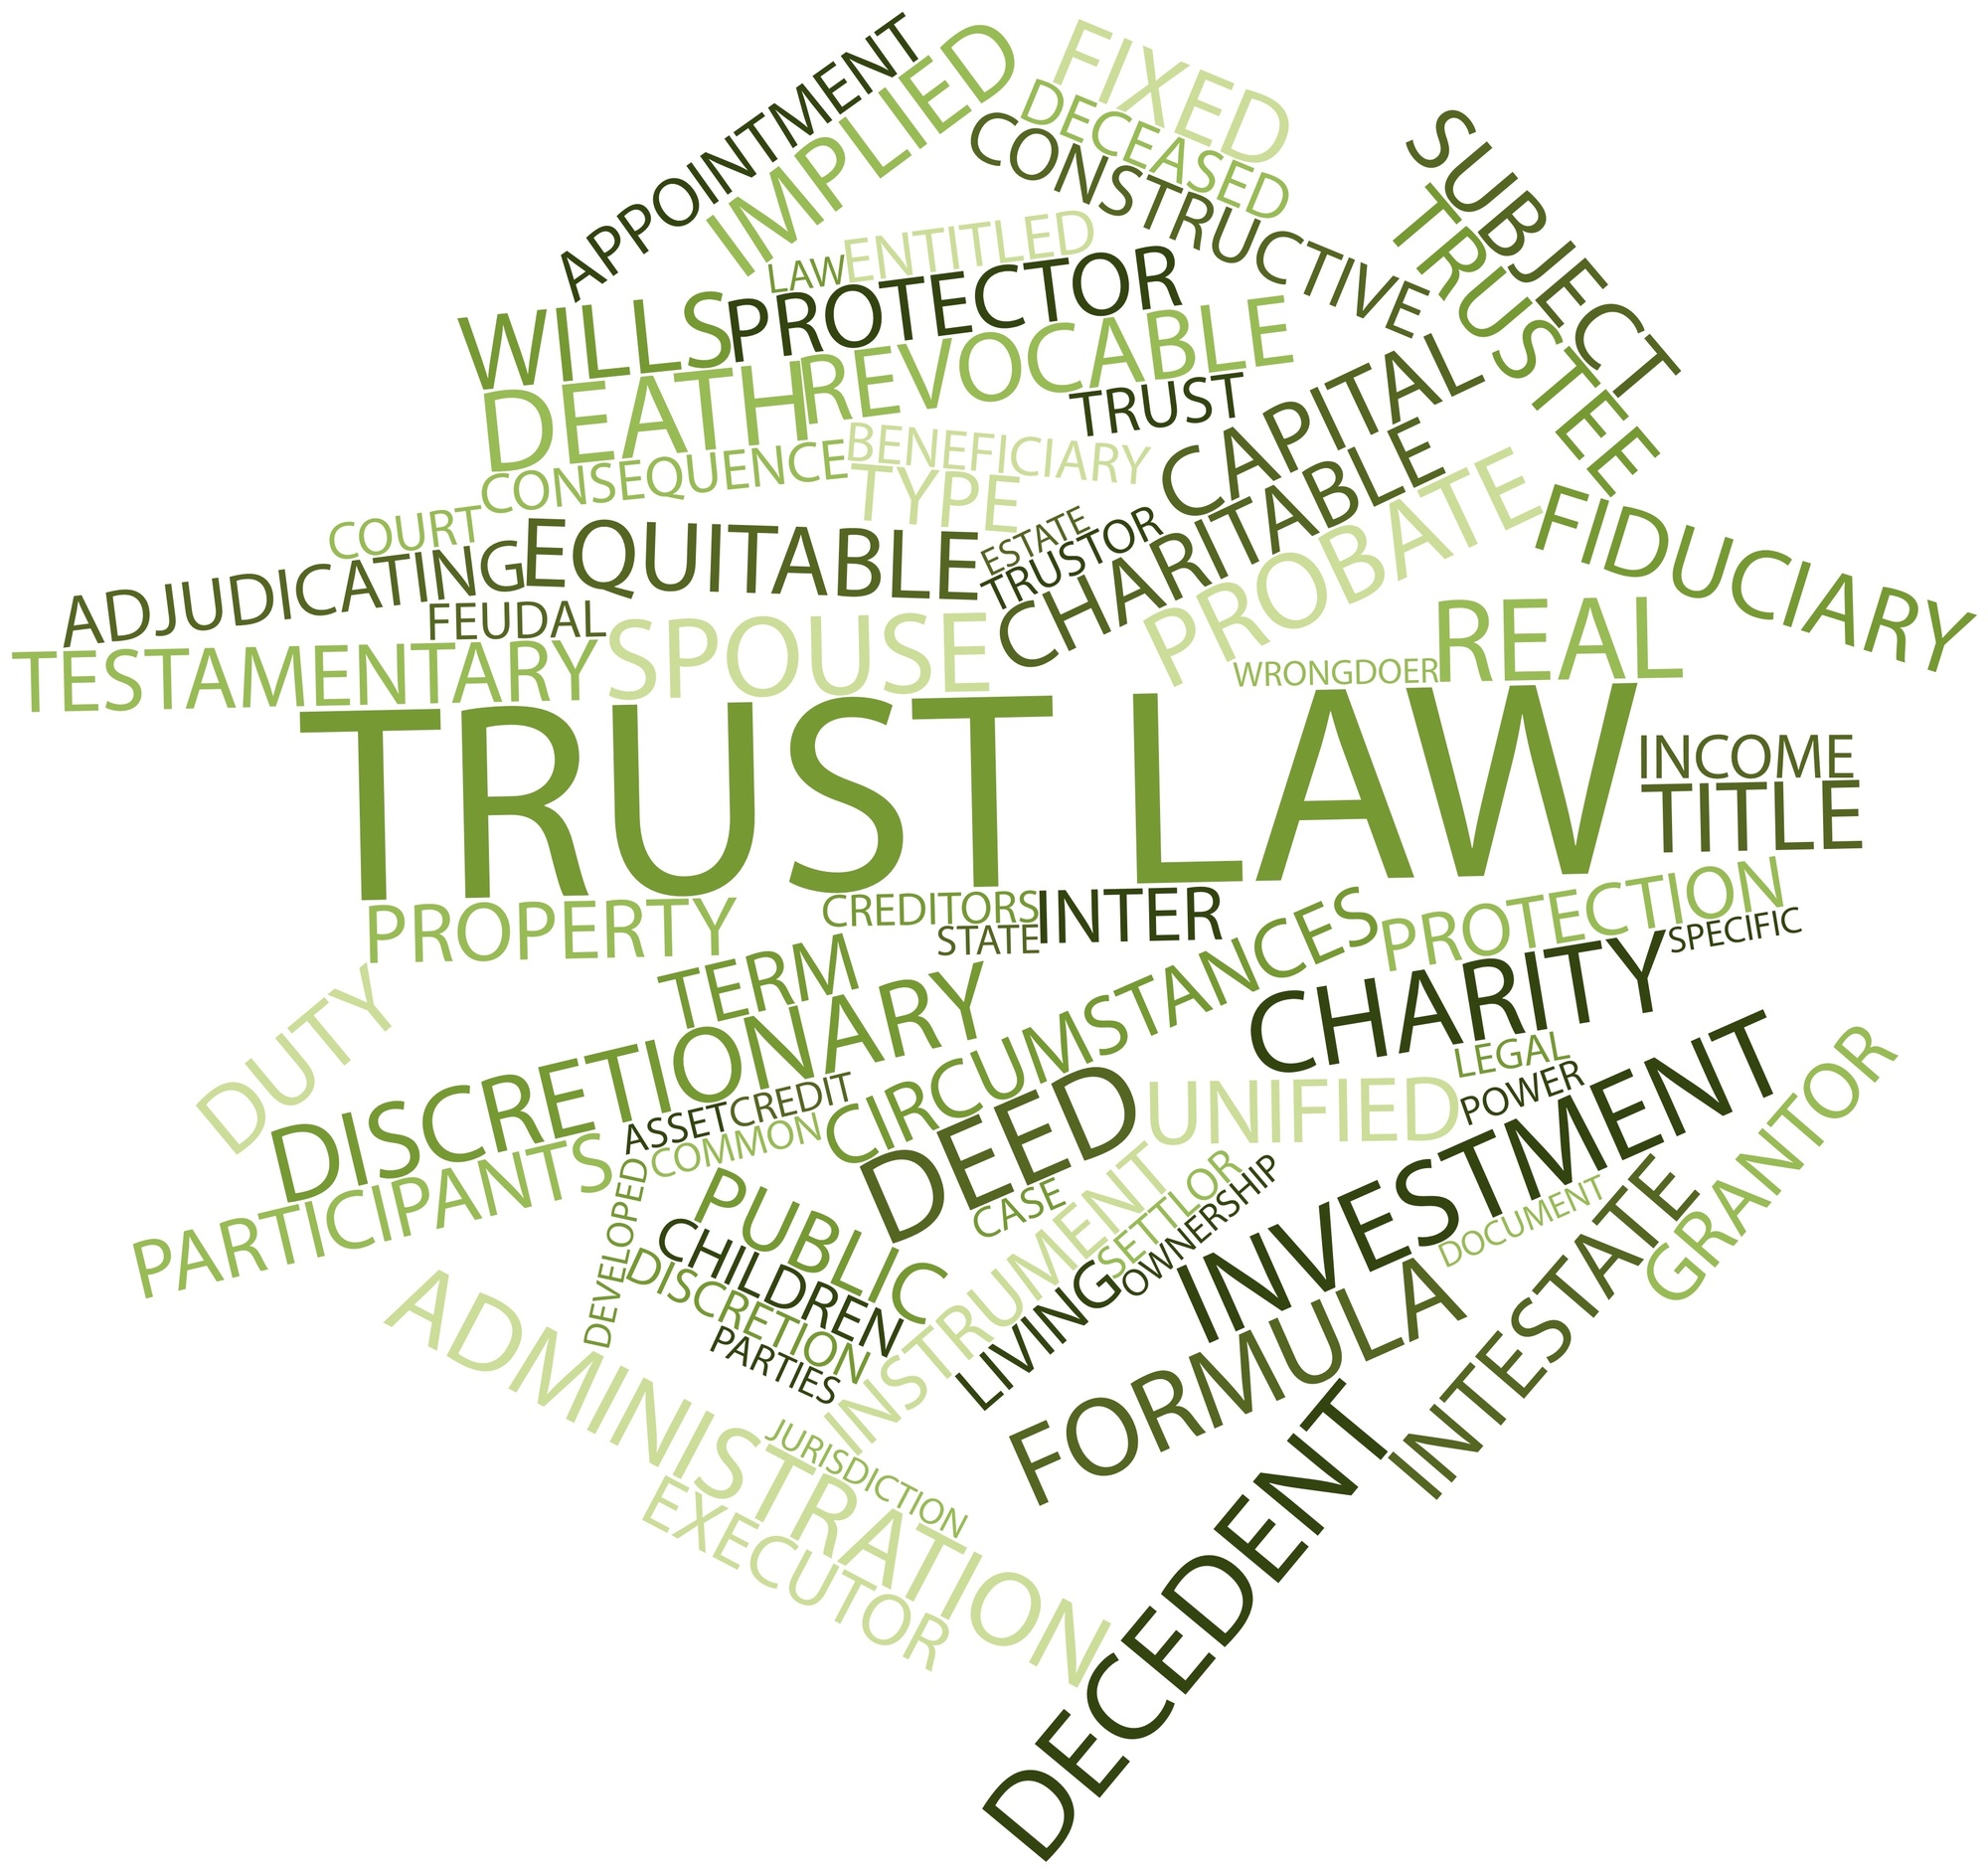 Are Trusts Protected from Creditors?